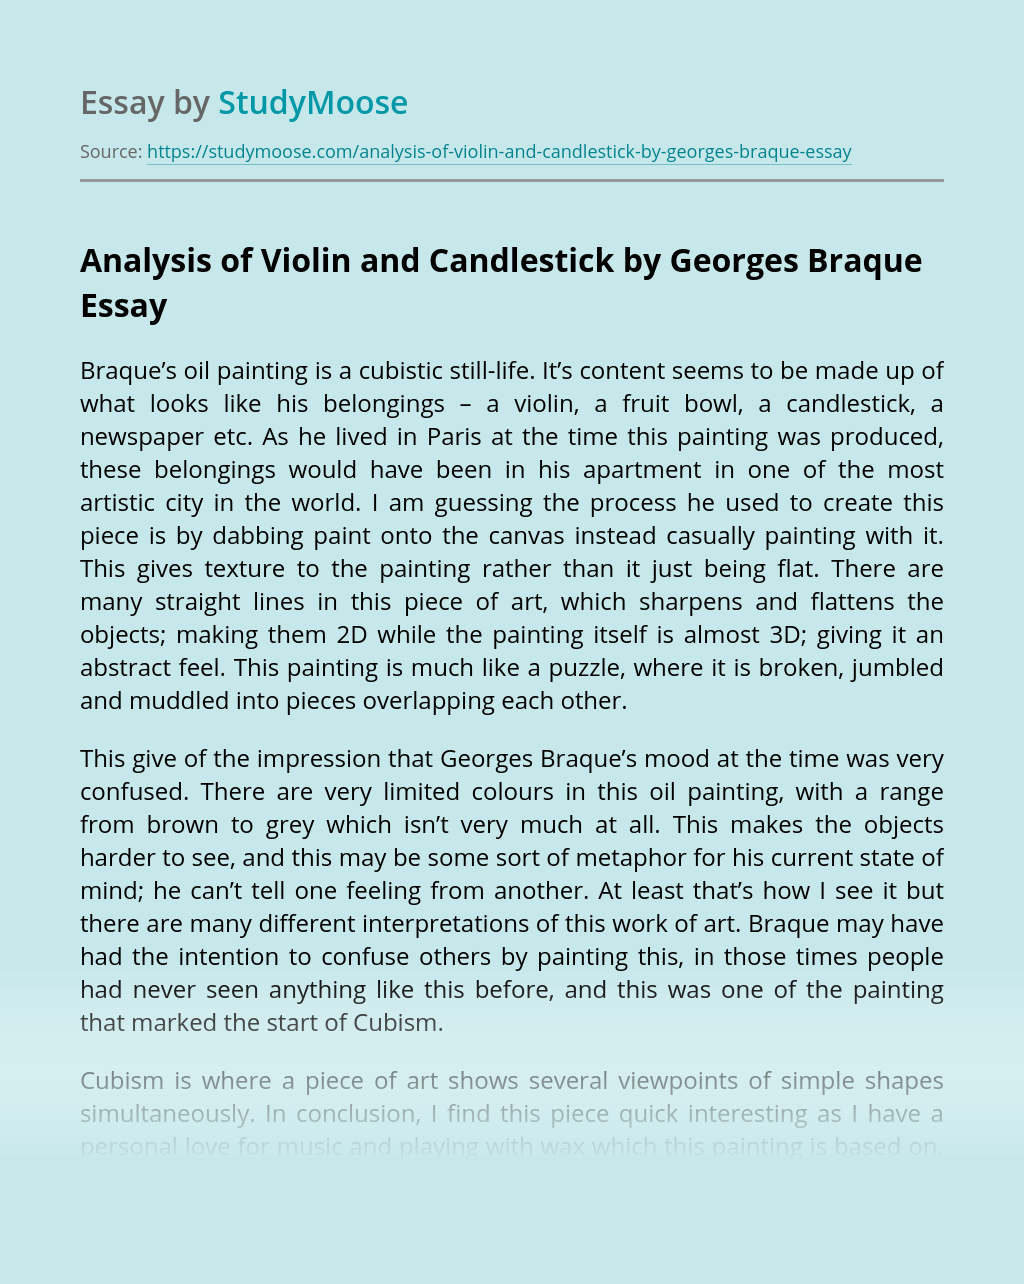 Analysis of Violin and Candlestick by Georges Braque